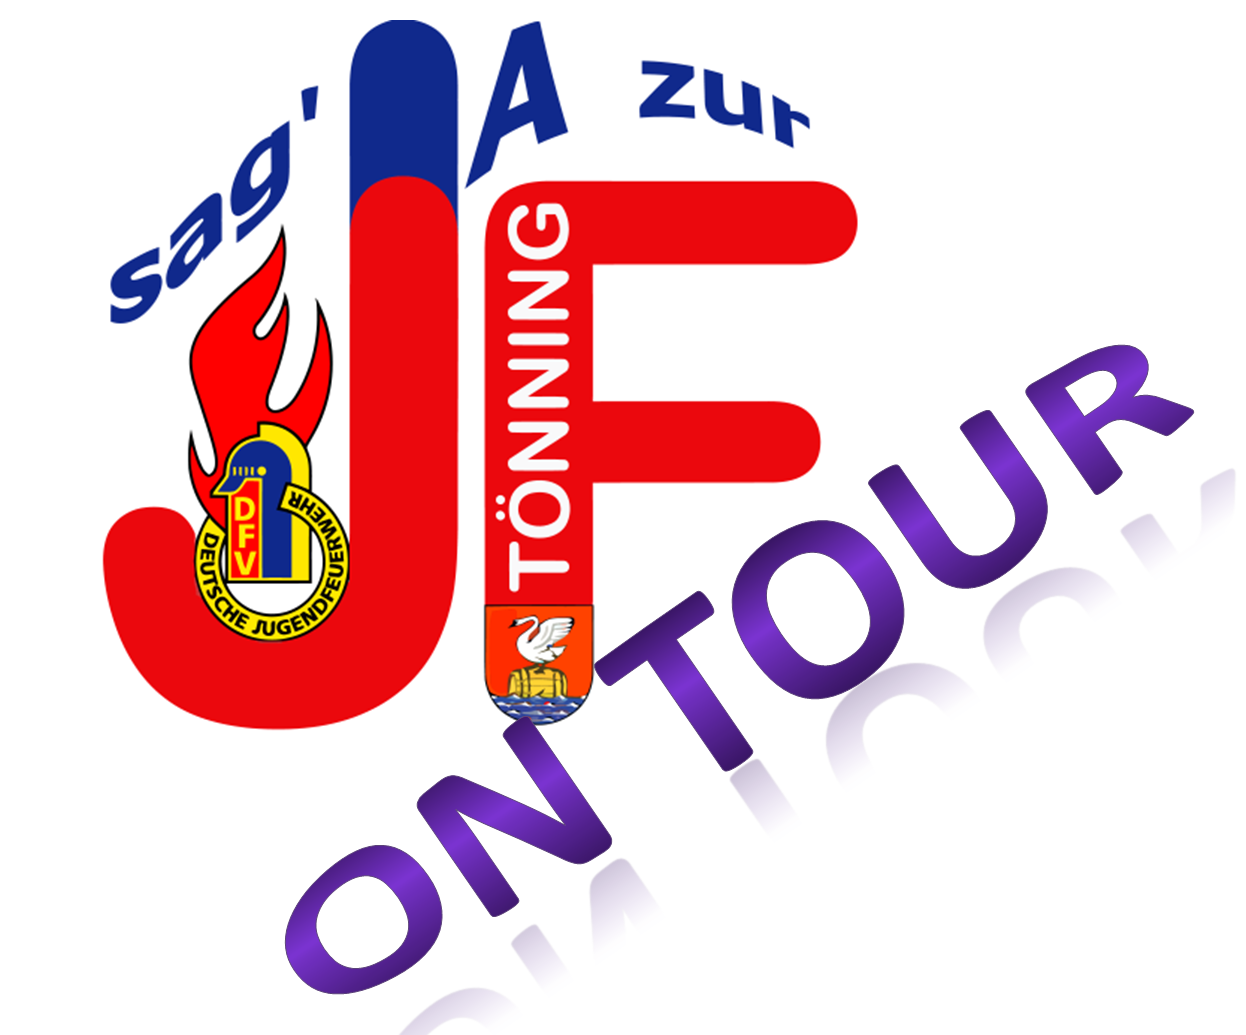 jf toenning on tour